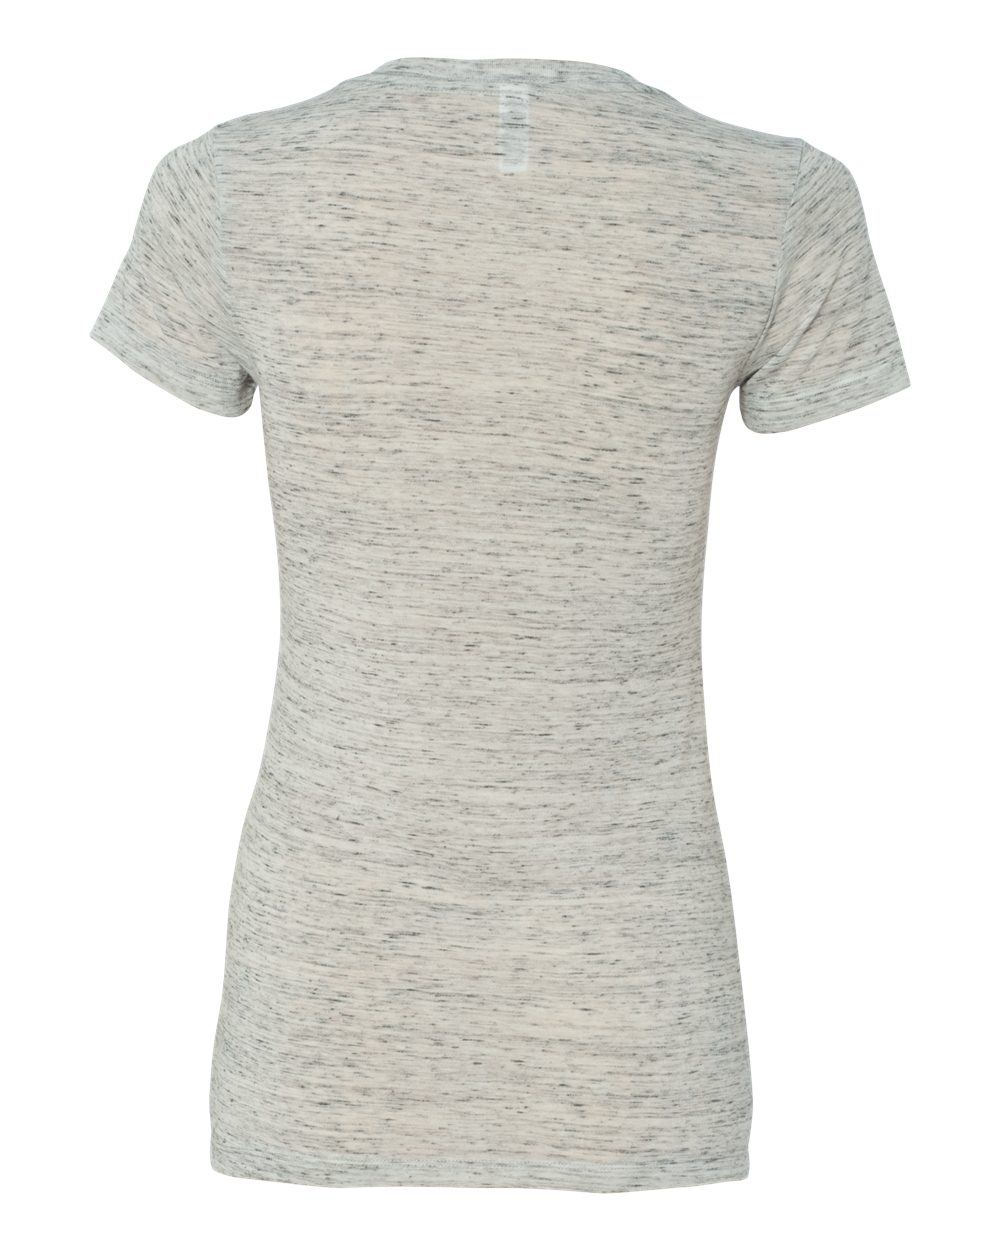 Bella-Canvas-Women-039-s-Jersey-Short-Sleeve-Deep-V-Neck-T-Shirt-B6035-S-2XL thumbnail 25